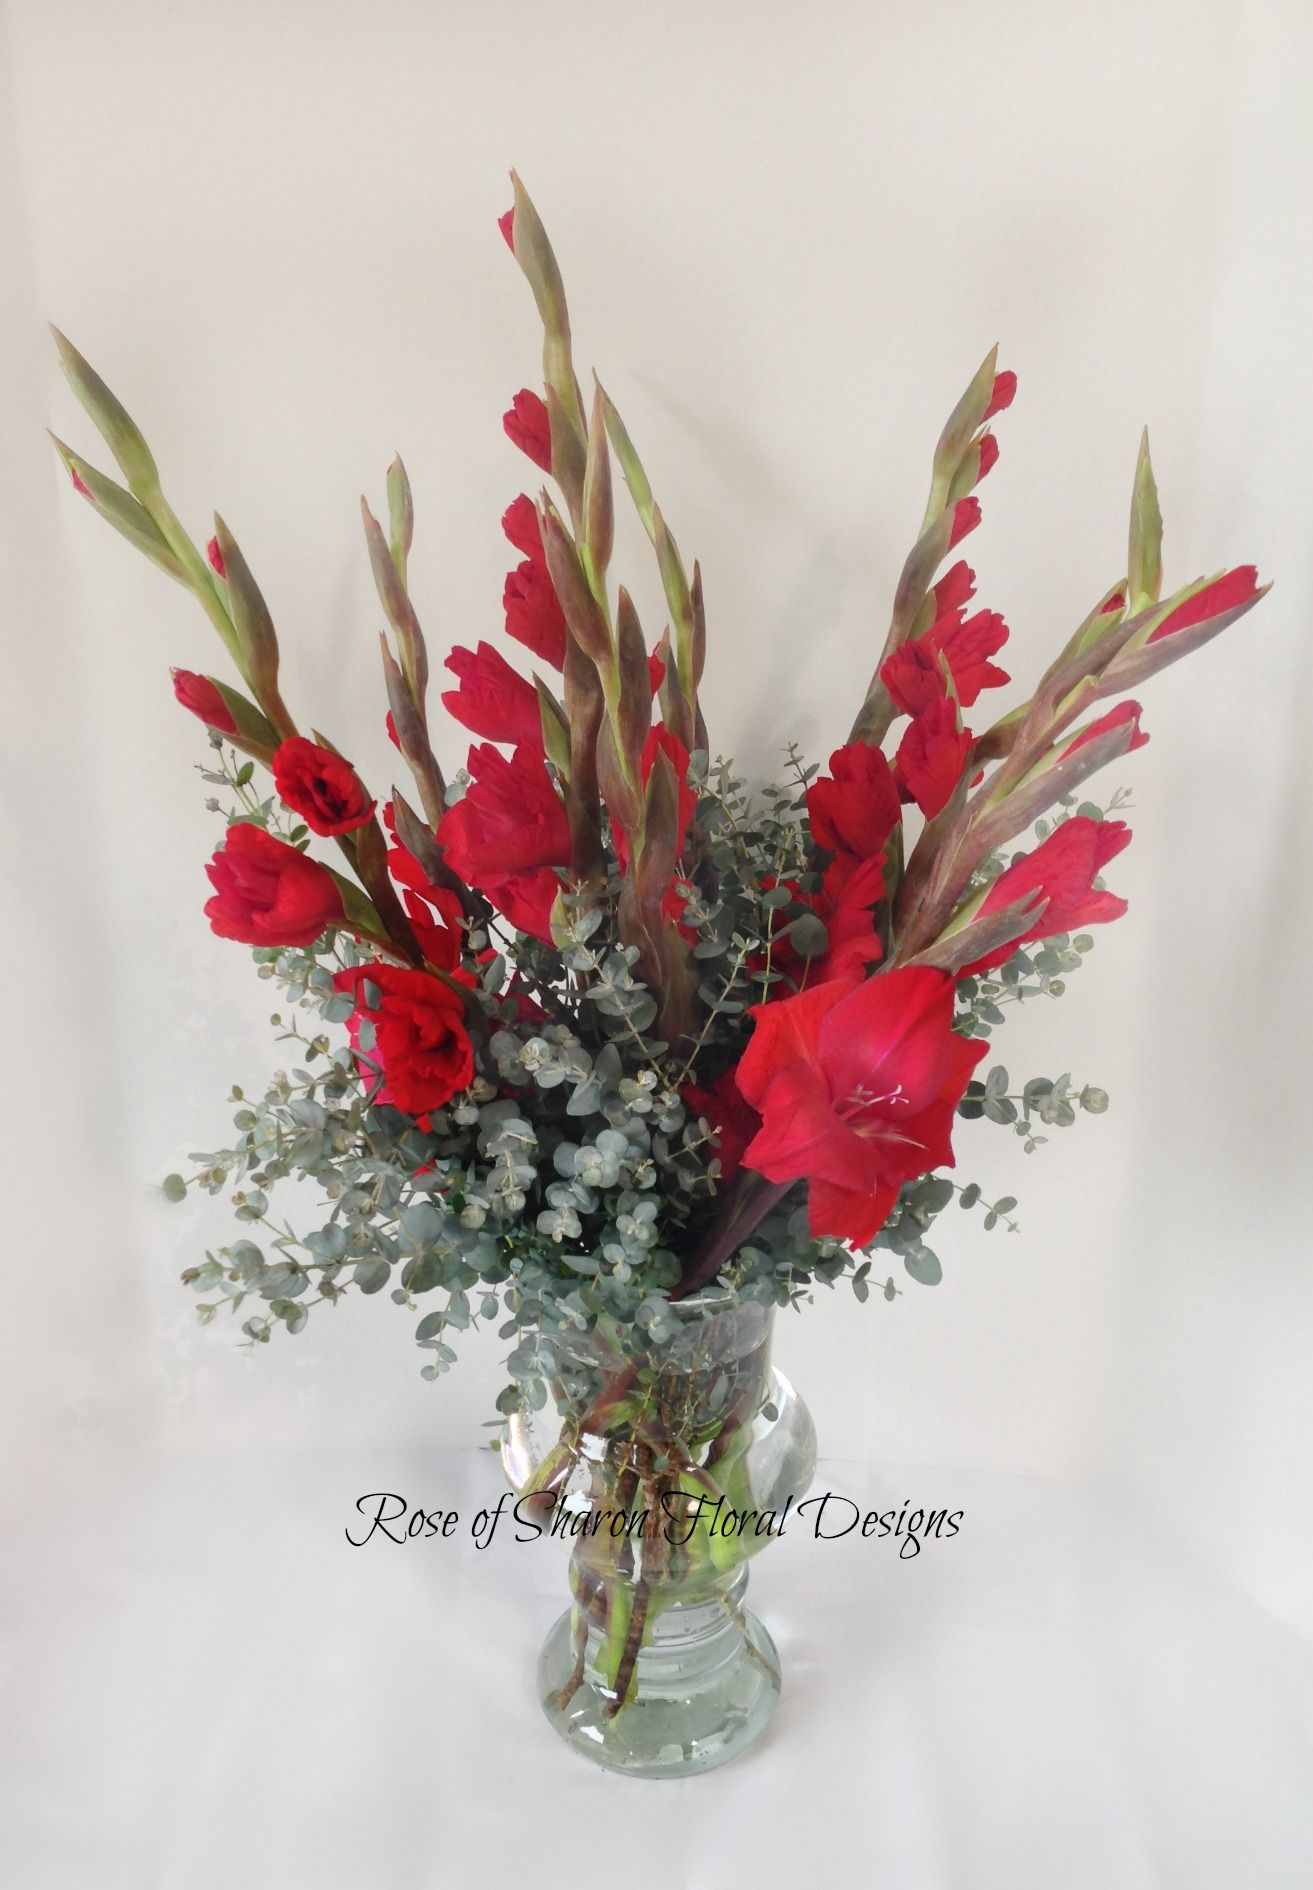 Pin By Wendi Gammon On My Special Gifts Christmas Floral Arrangements Flower Arrangements Gladiolus Arrangements